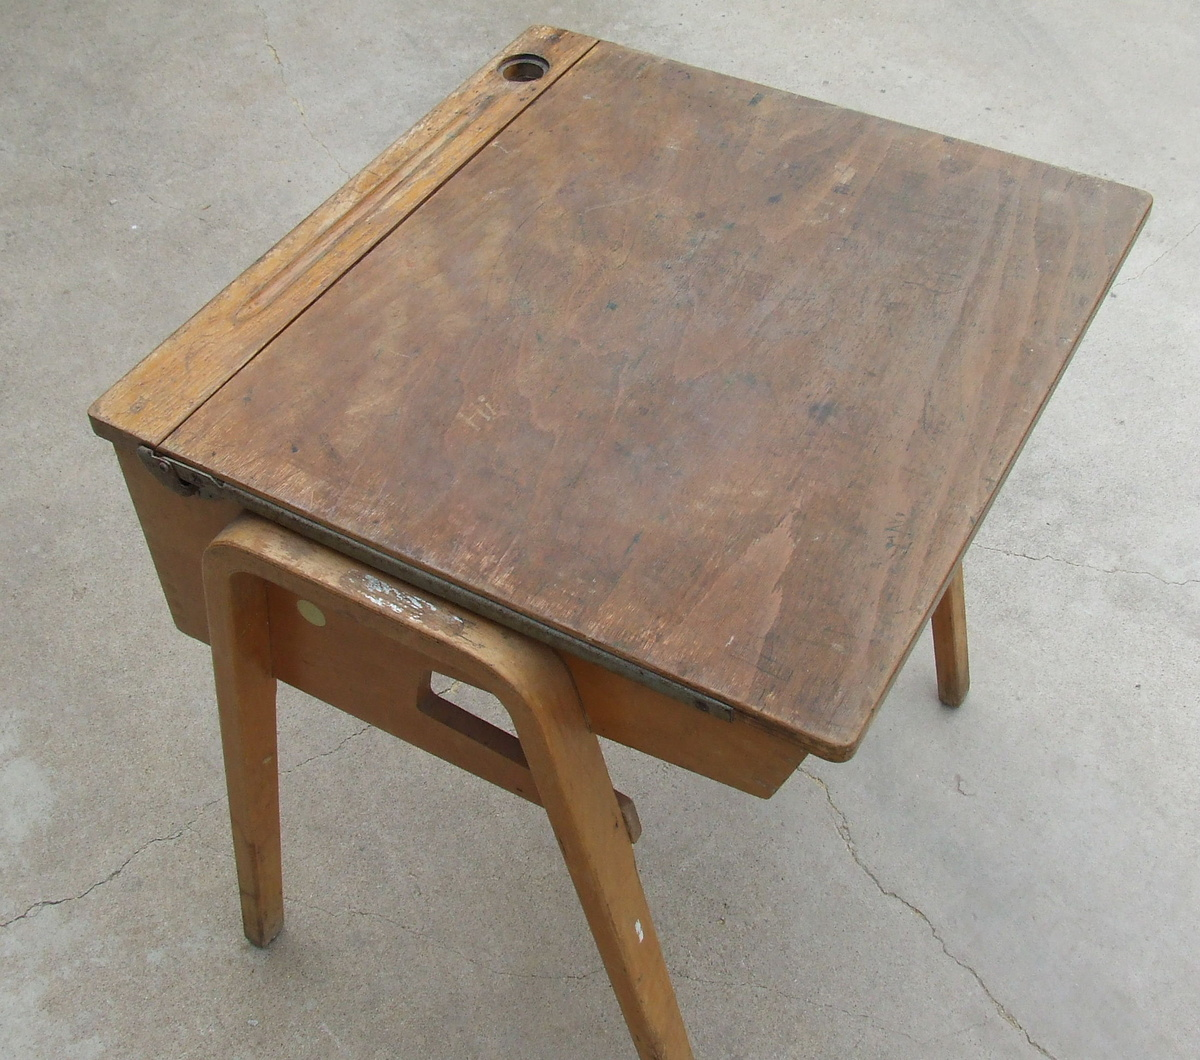 Wooden School Desk ~ Great old wooden school desk complete with graffiti